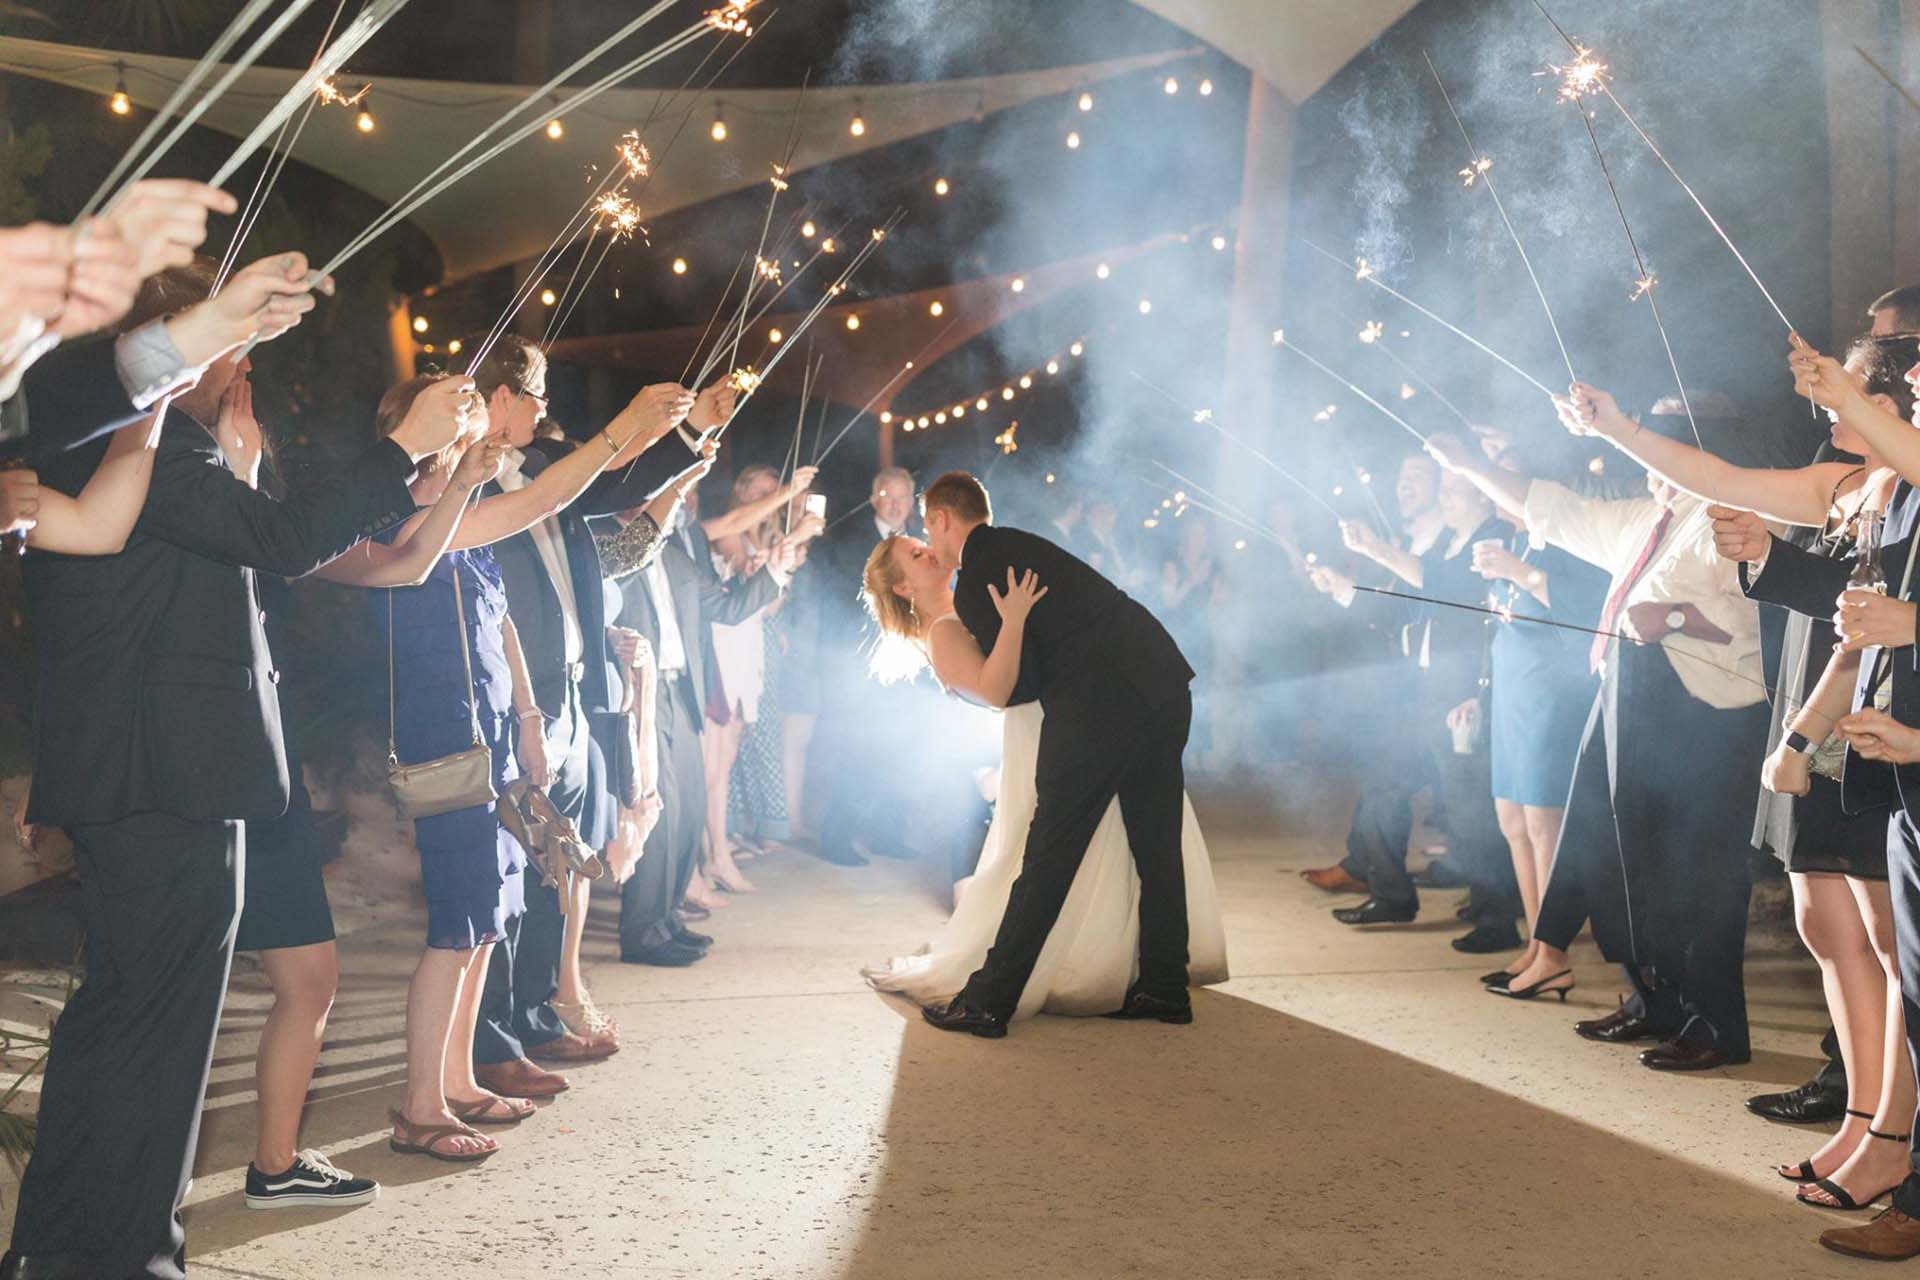 Bride and groom with guests holding sparklers